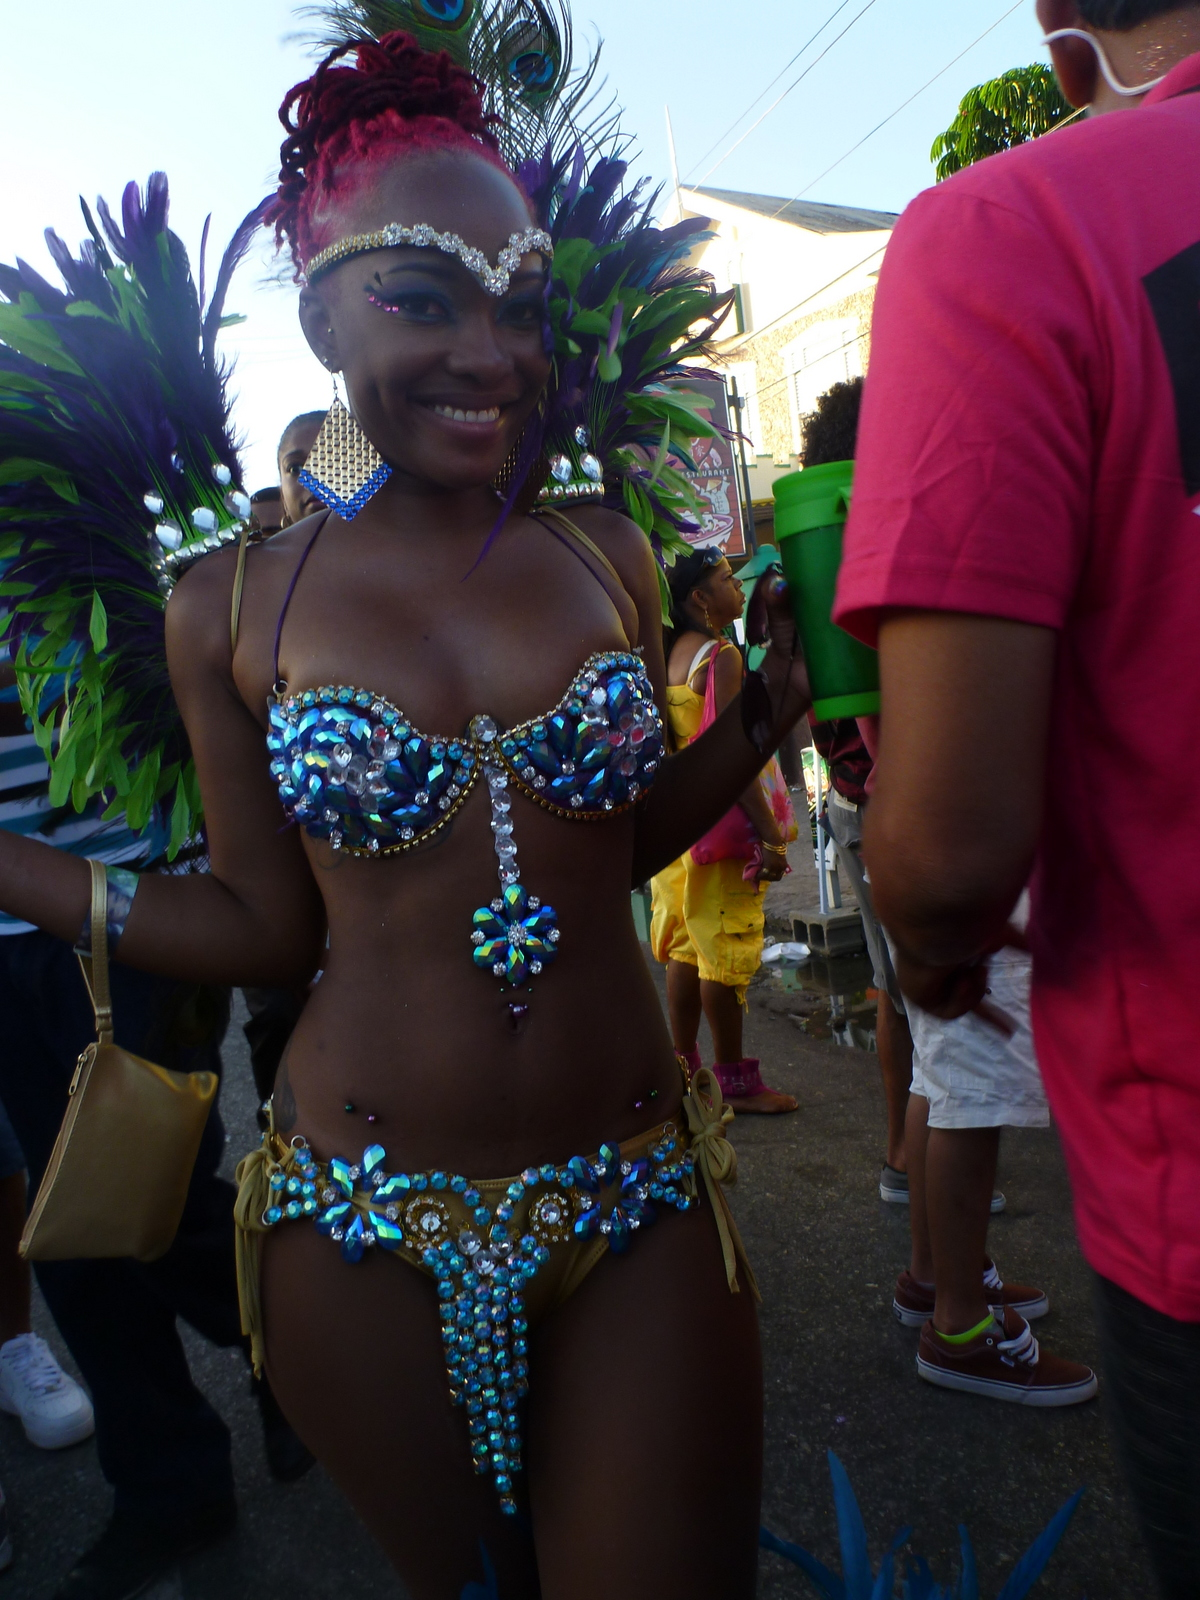 Mardi gras i Port of Spain, Trinidad